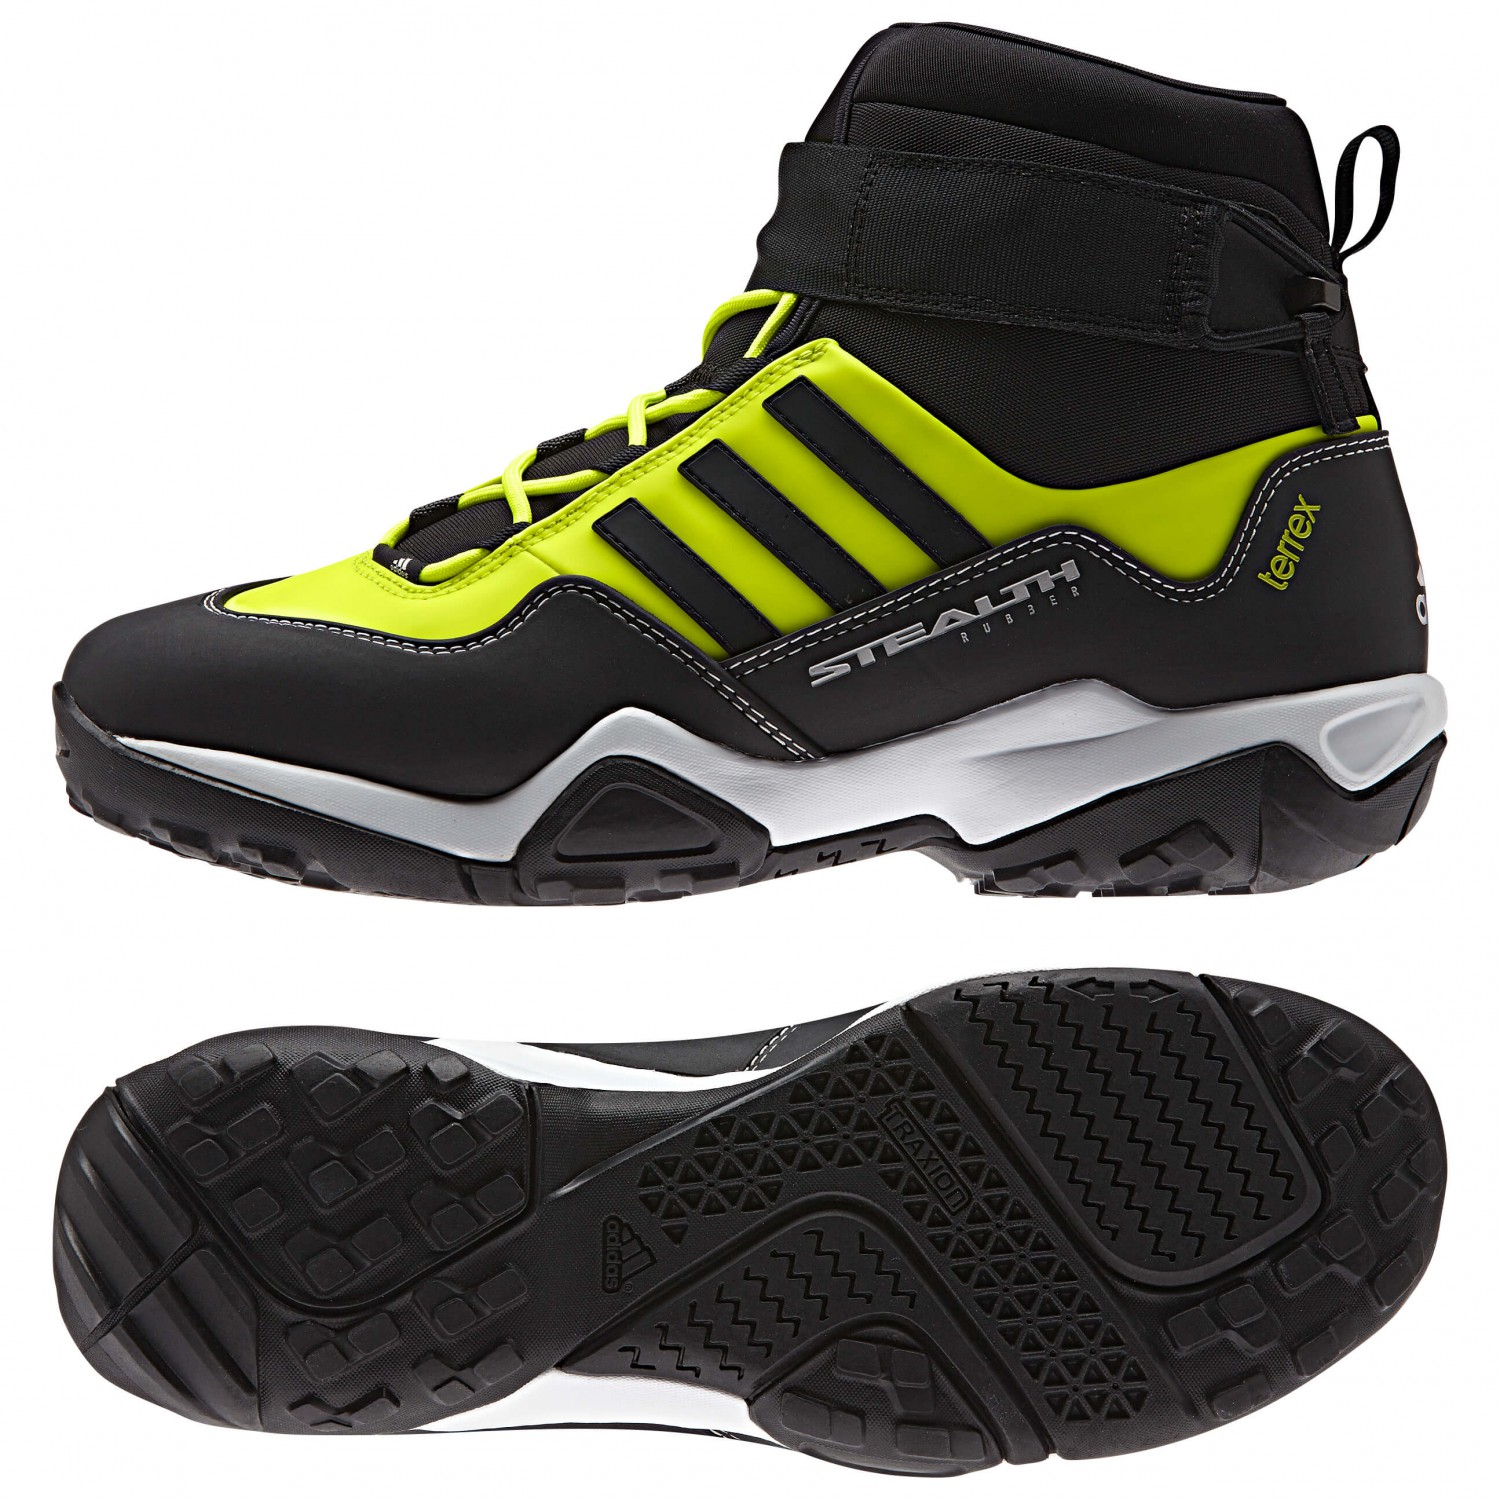 buy online 1a1fd c19a0 Adidas Terrex Hydro Lace Water Shoes Buy online